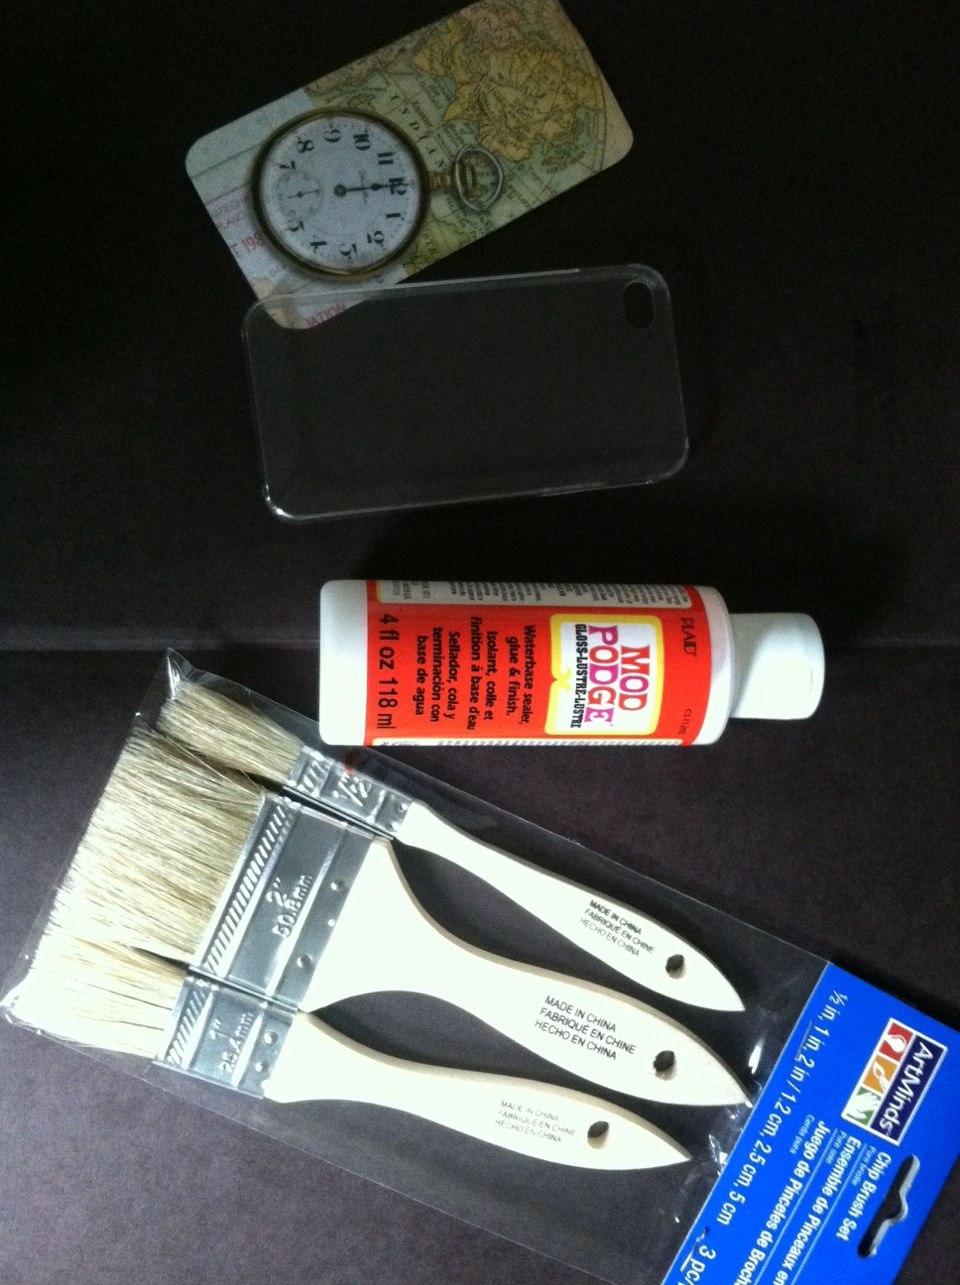 Next you will take your Mod Podge and brush and place your paper on your phone case, then apply the Mod Podge then take your brush, & spread it every where!!! Let it sit for at least a DAY!!!